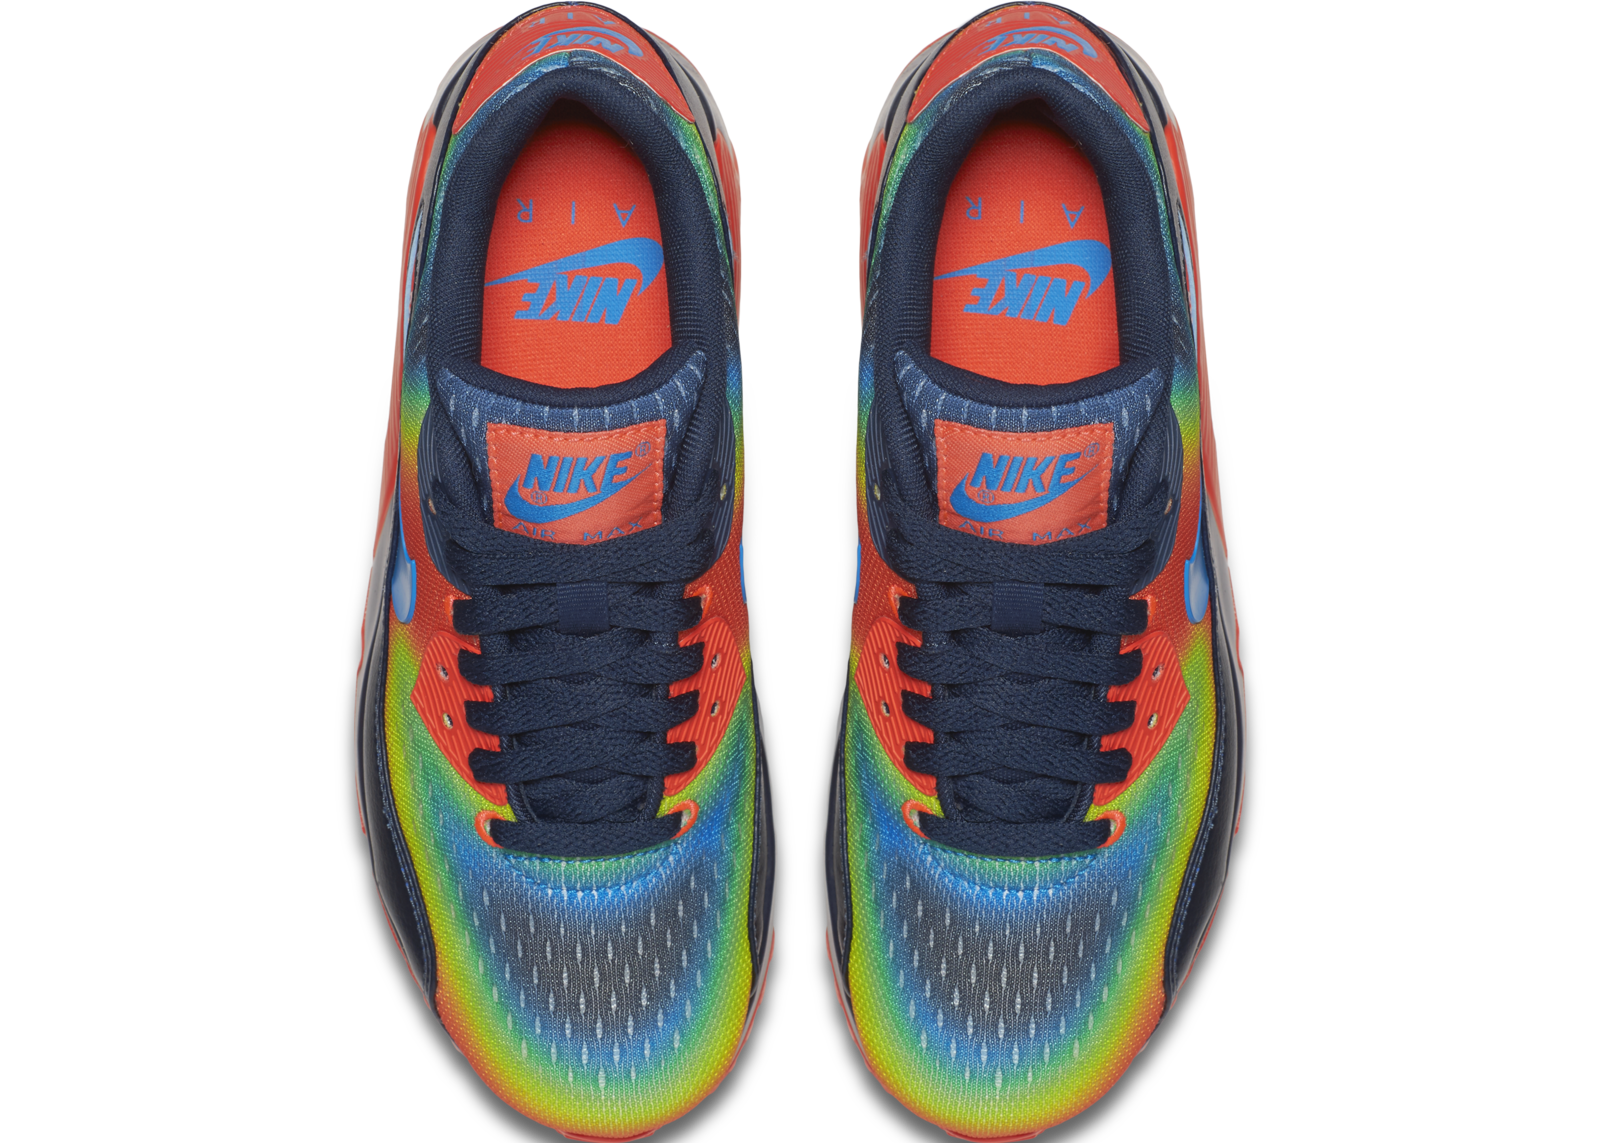 reputable site d7a41 7eb16 847656 400 D PREM copy. 847652 400 F PREM copy. 847655 400 D PREM copy. The Heat  Map Pack, including the Air Max 90 ...